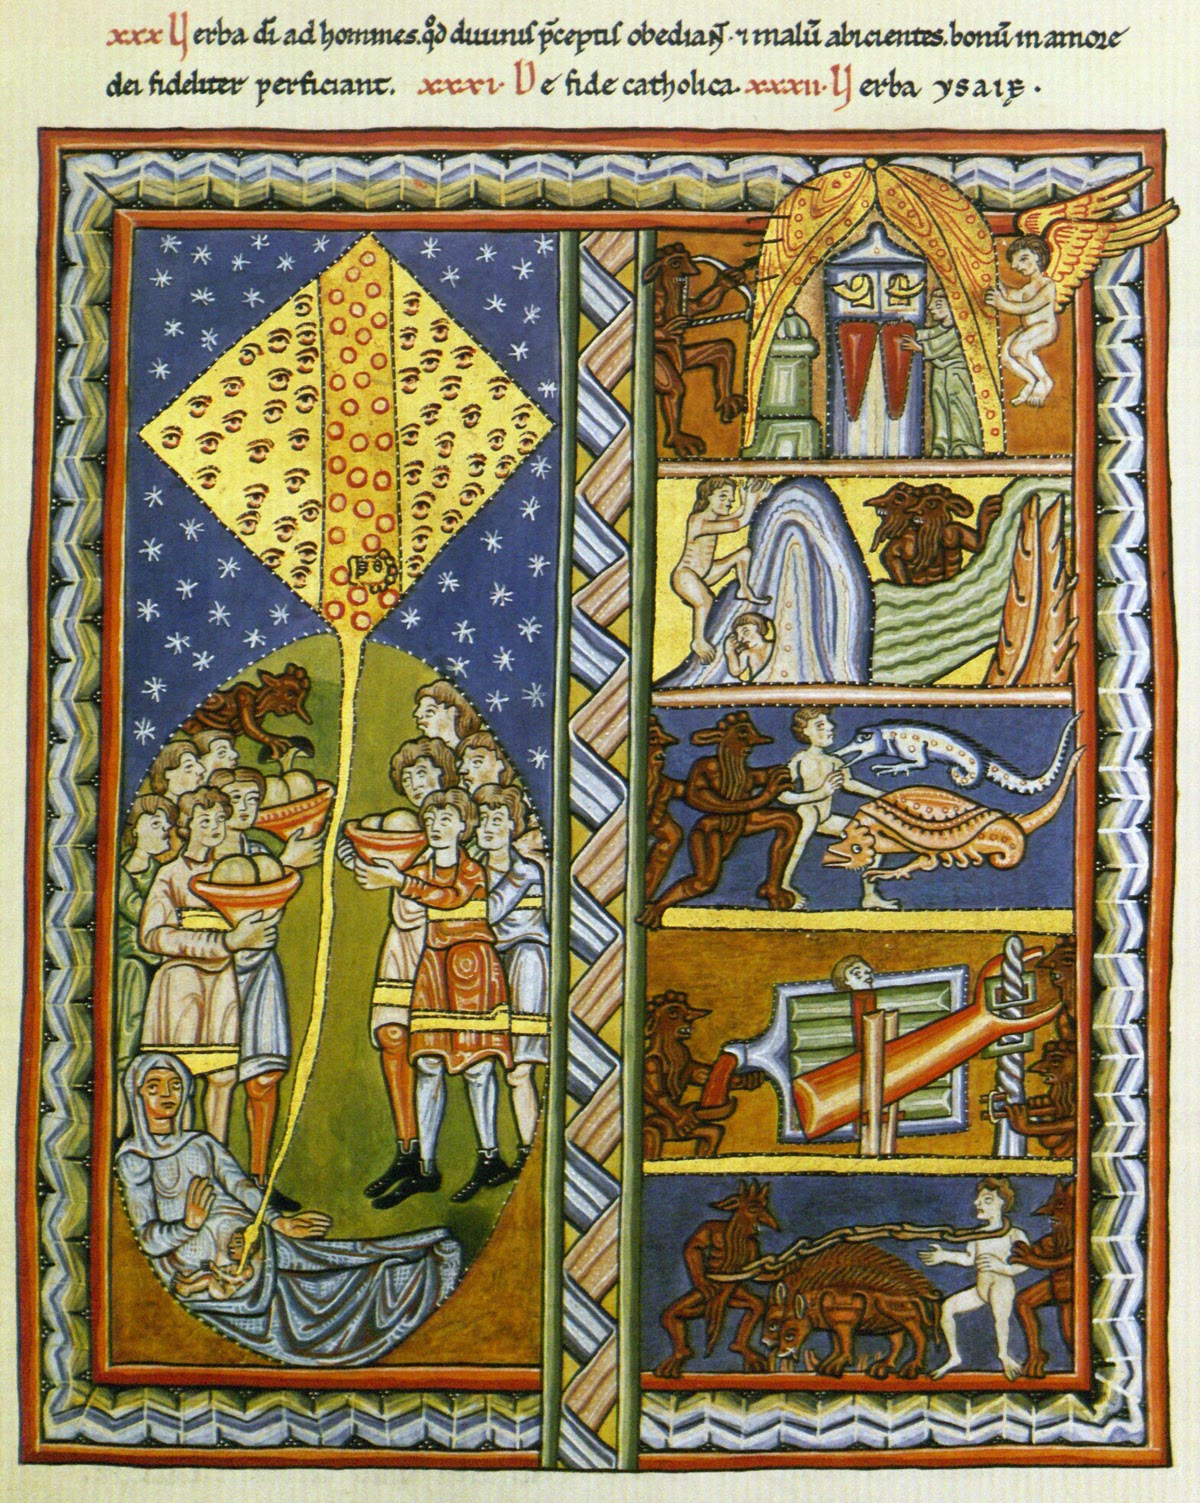 """Illumination from Liber Scivias:""""Die Seele und ihr Zelt"""" (The soul and its tent) picturing the divine spark entering the human body (left) and it's journey throughout the challenges and difficulties of life (right, from bottom up)until finding the place to unfoldher tent of rest.      """"If Hildegard had been a male   theologian, her Scivias would undoubtedly have been considered one of the most important early medieval summas.""""  says the German Hildegard scholar Schipperges."""